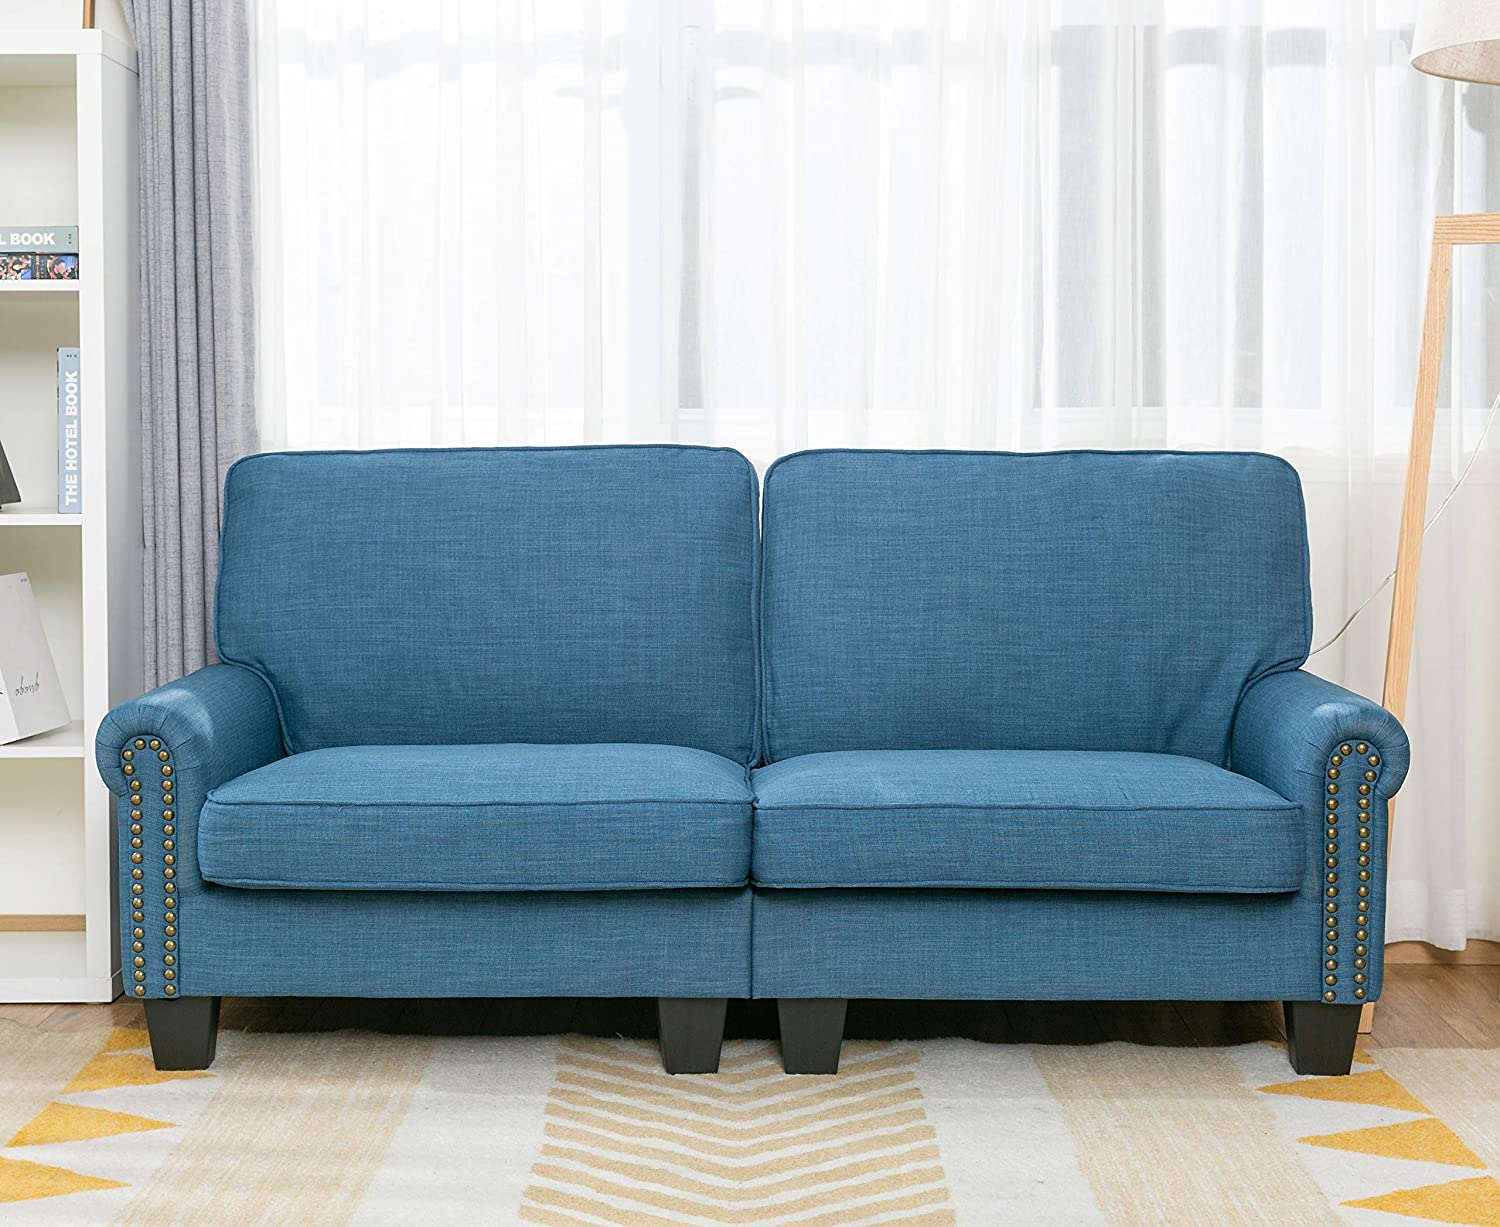 Sofa loveseat Soft and Easily Assemble Couch Blue Upholstered,by LifeFair